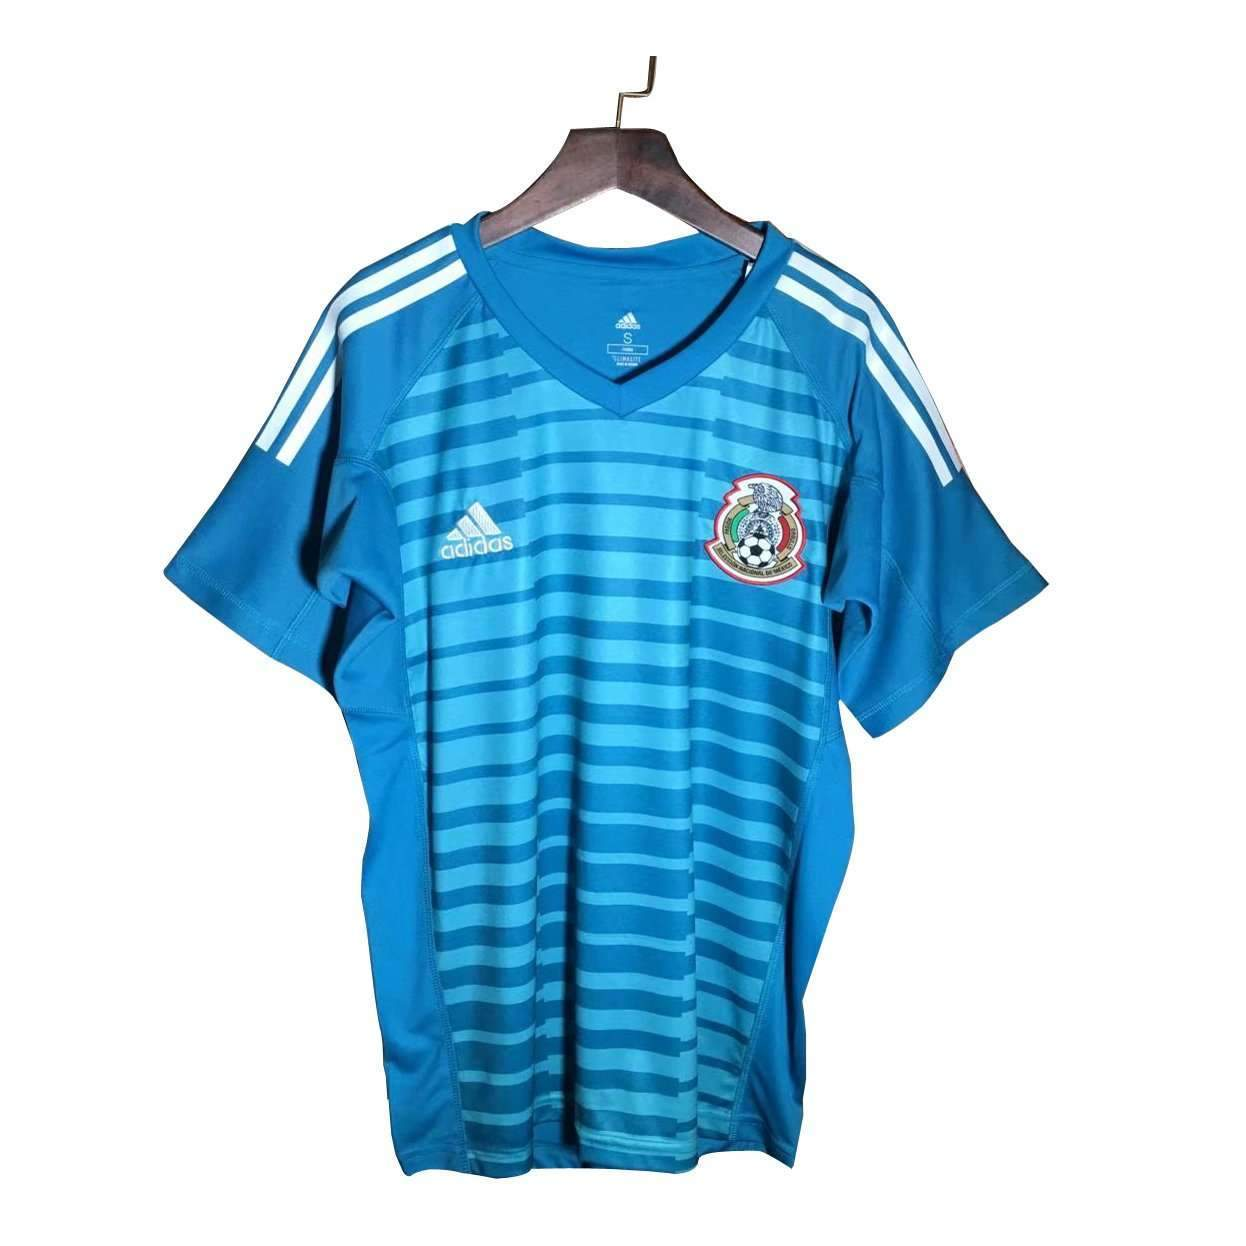 pretty nice a885a 24475 Mexico Adidas Goalkeeper Jersey Blue/White national football team 2018 FIFA  World Cup Yellow Goalkeeper 2018-2019 FÚTBOL SOCCER KIT CALCIO SHIRT ...